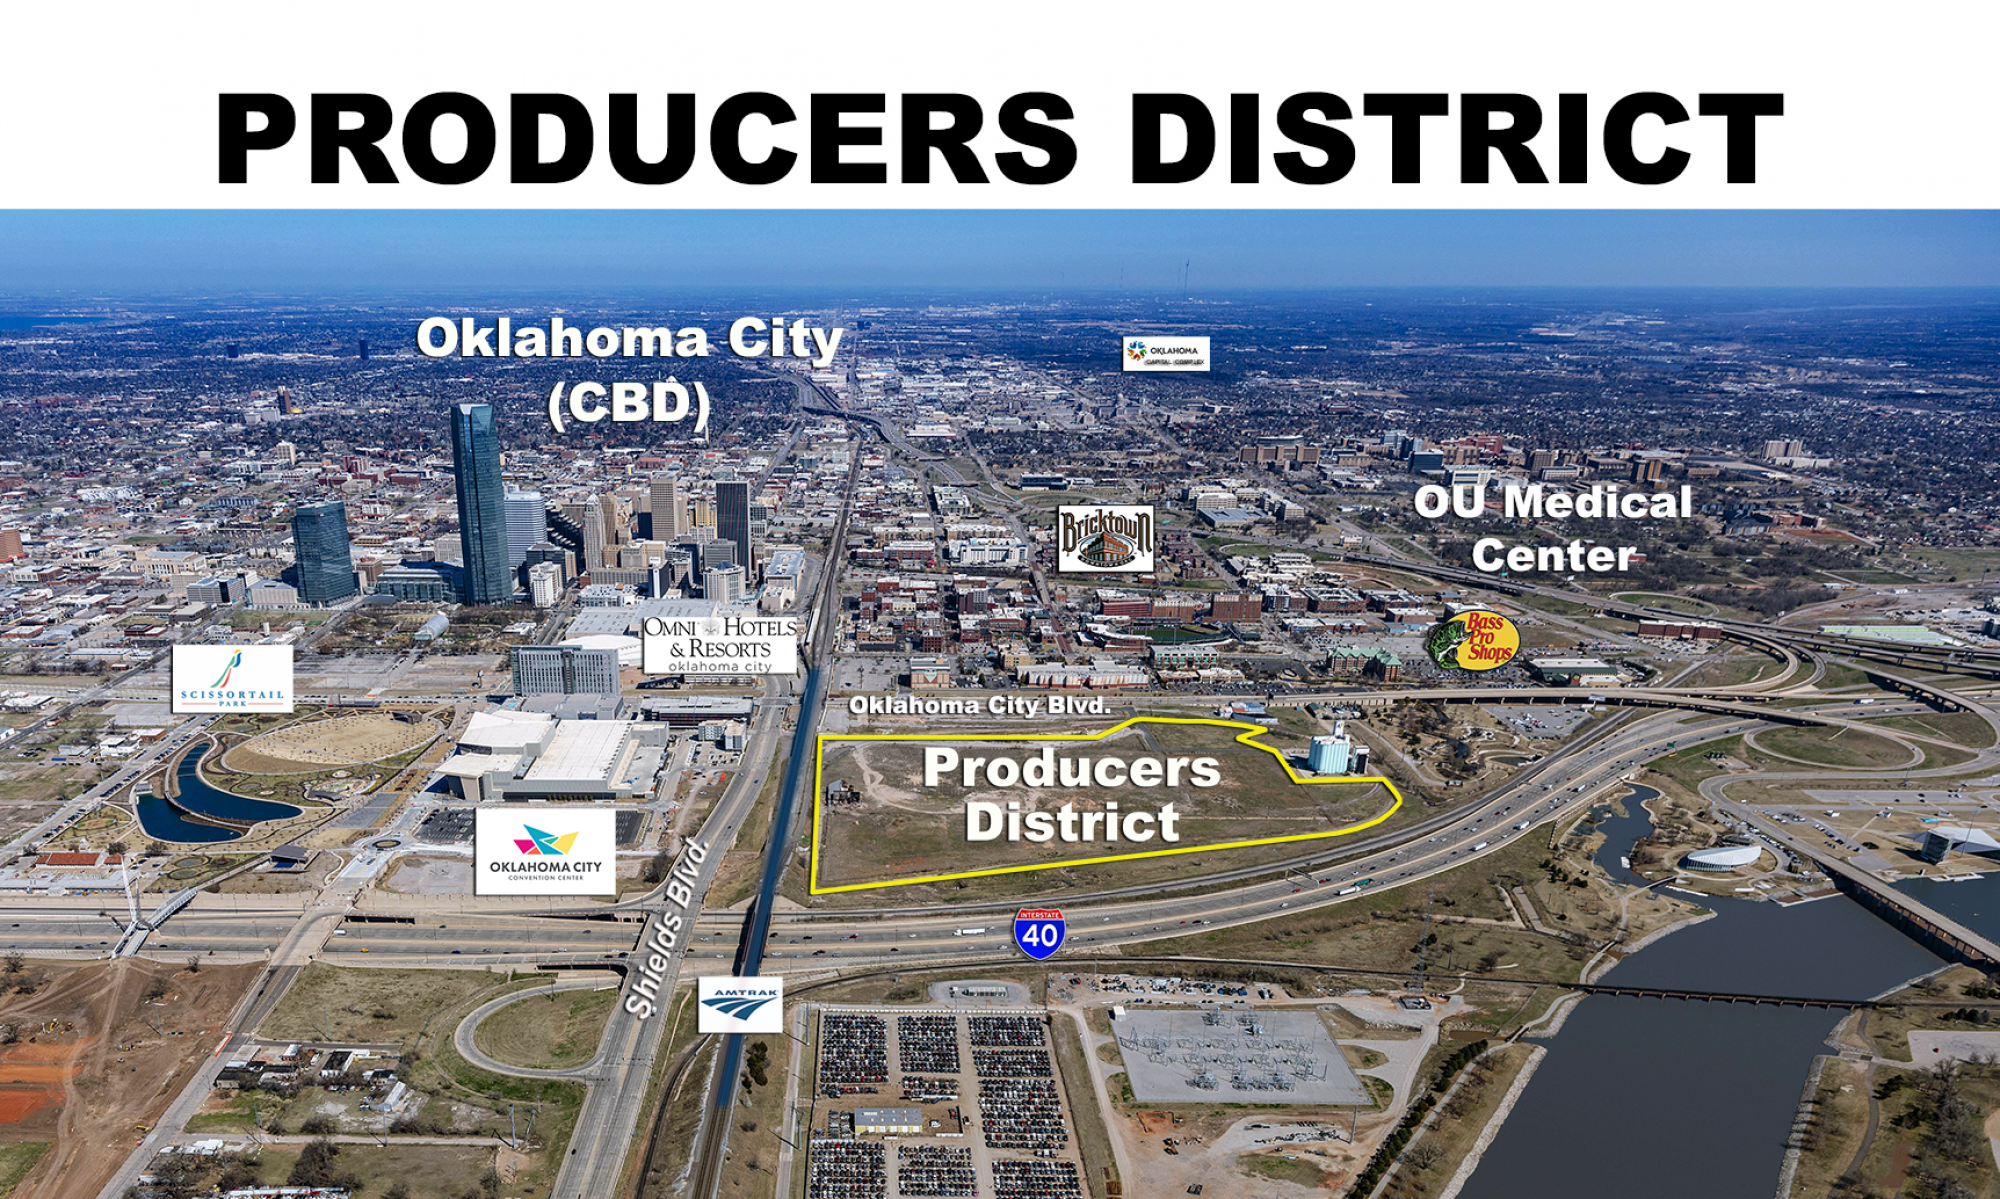 Producers District